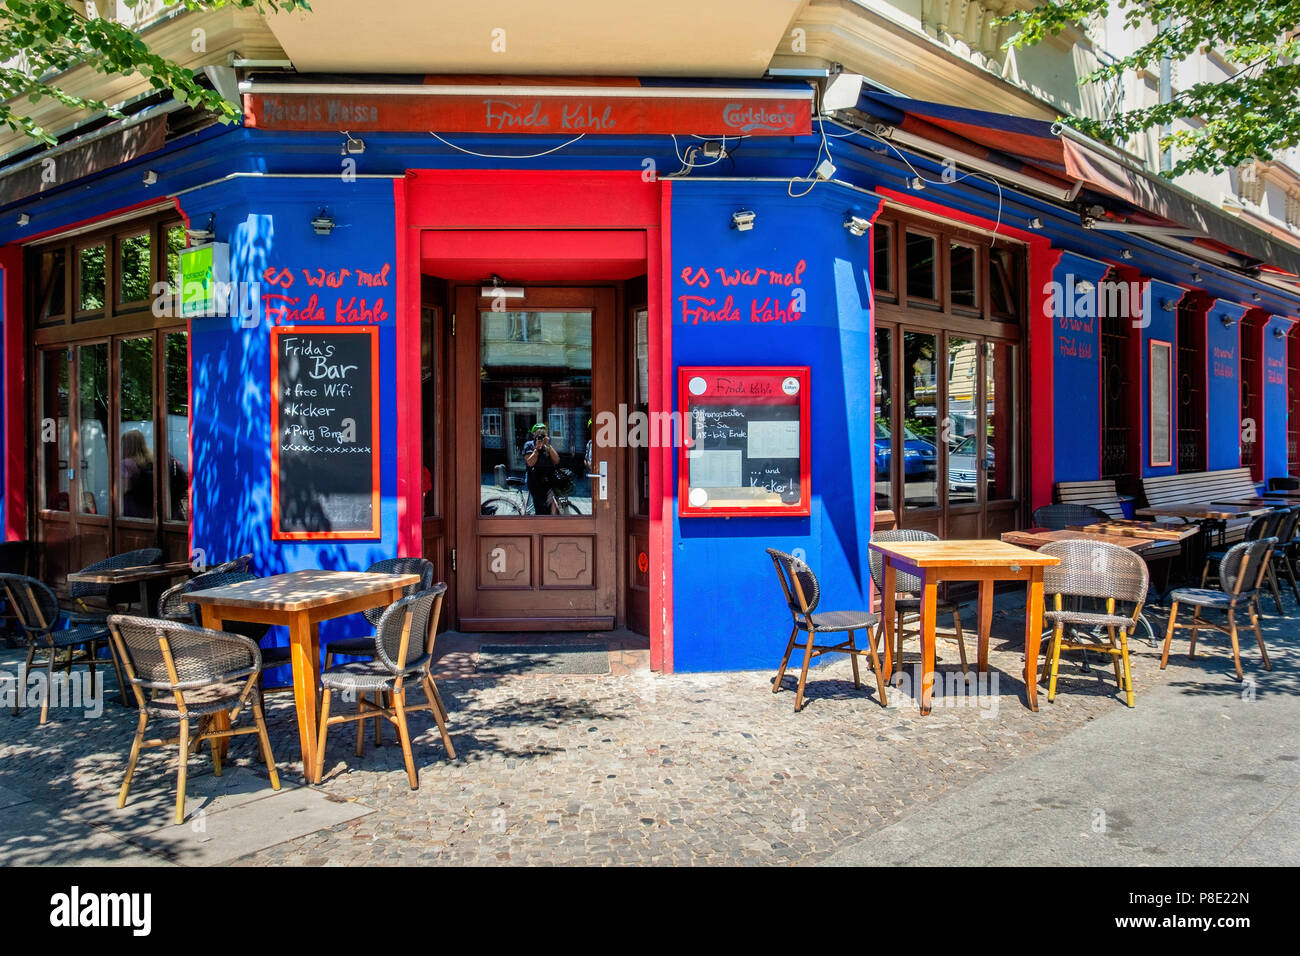 Berlin Prenzlauer Berg Frida Kahlo Mexican Restaurant Bar Blue Red Extreror With Outdoor Tables On Pavement Stock Photo Alamy